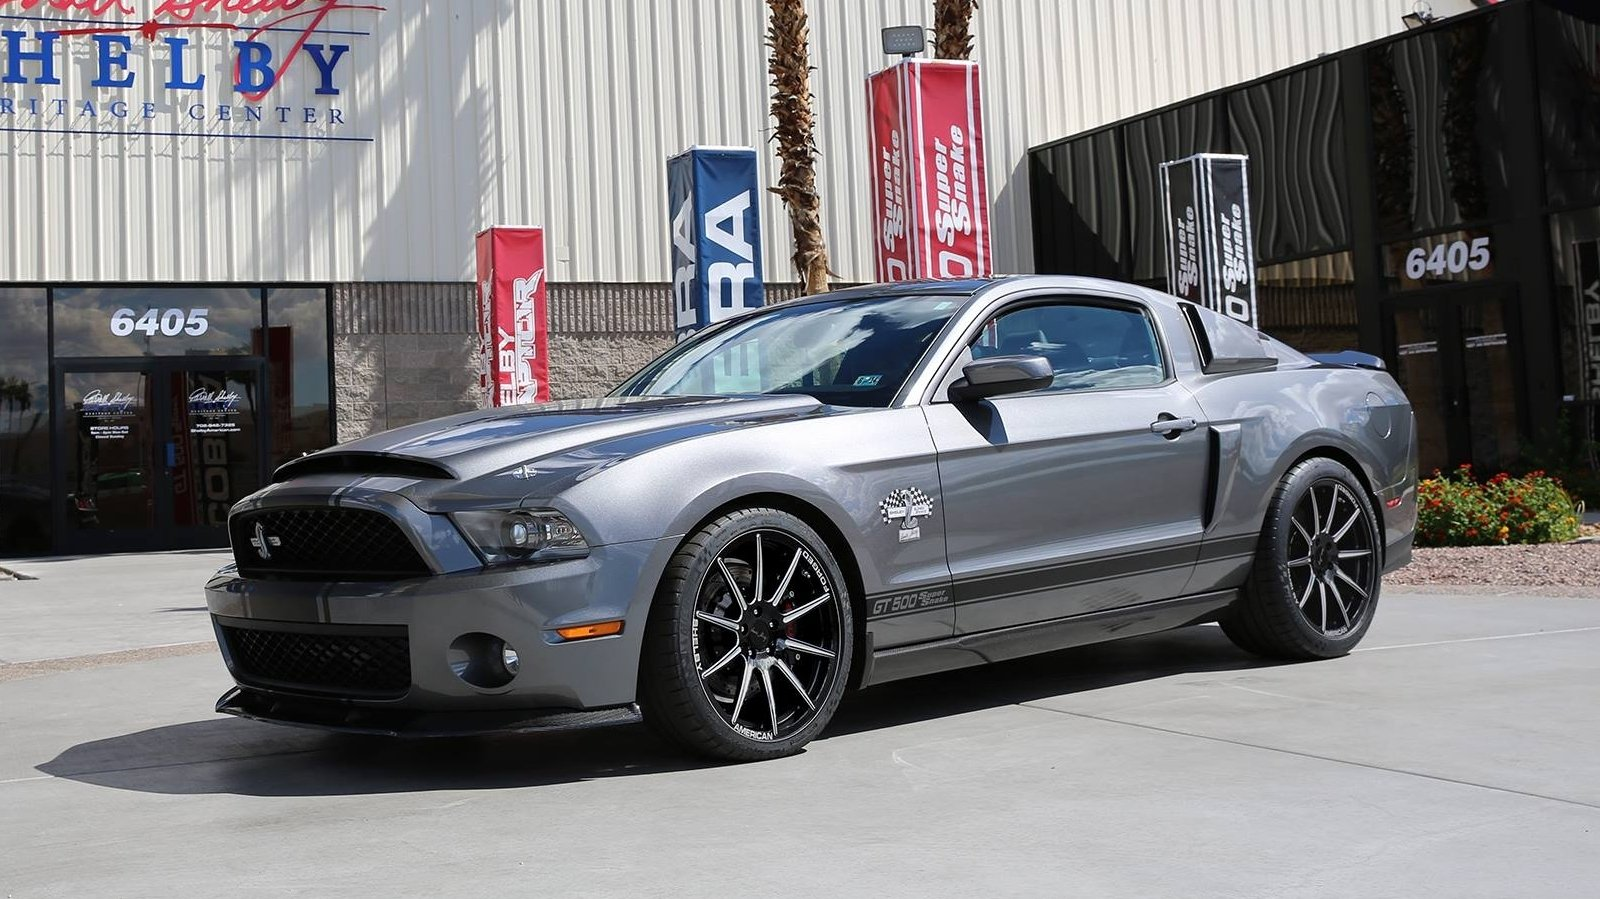 2014 ford mustang shelby gt500 super snake top speed car autos gallery. Black Bedroom Furniture Sets. Home Design Ideas